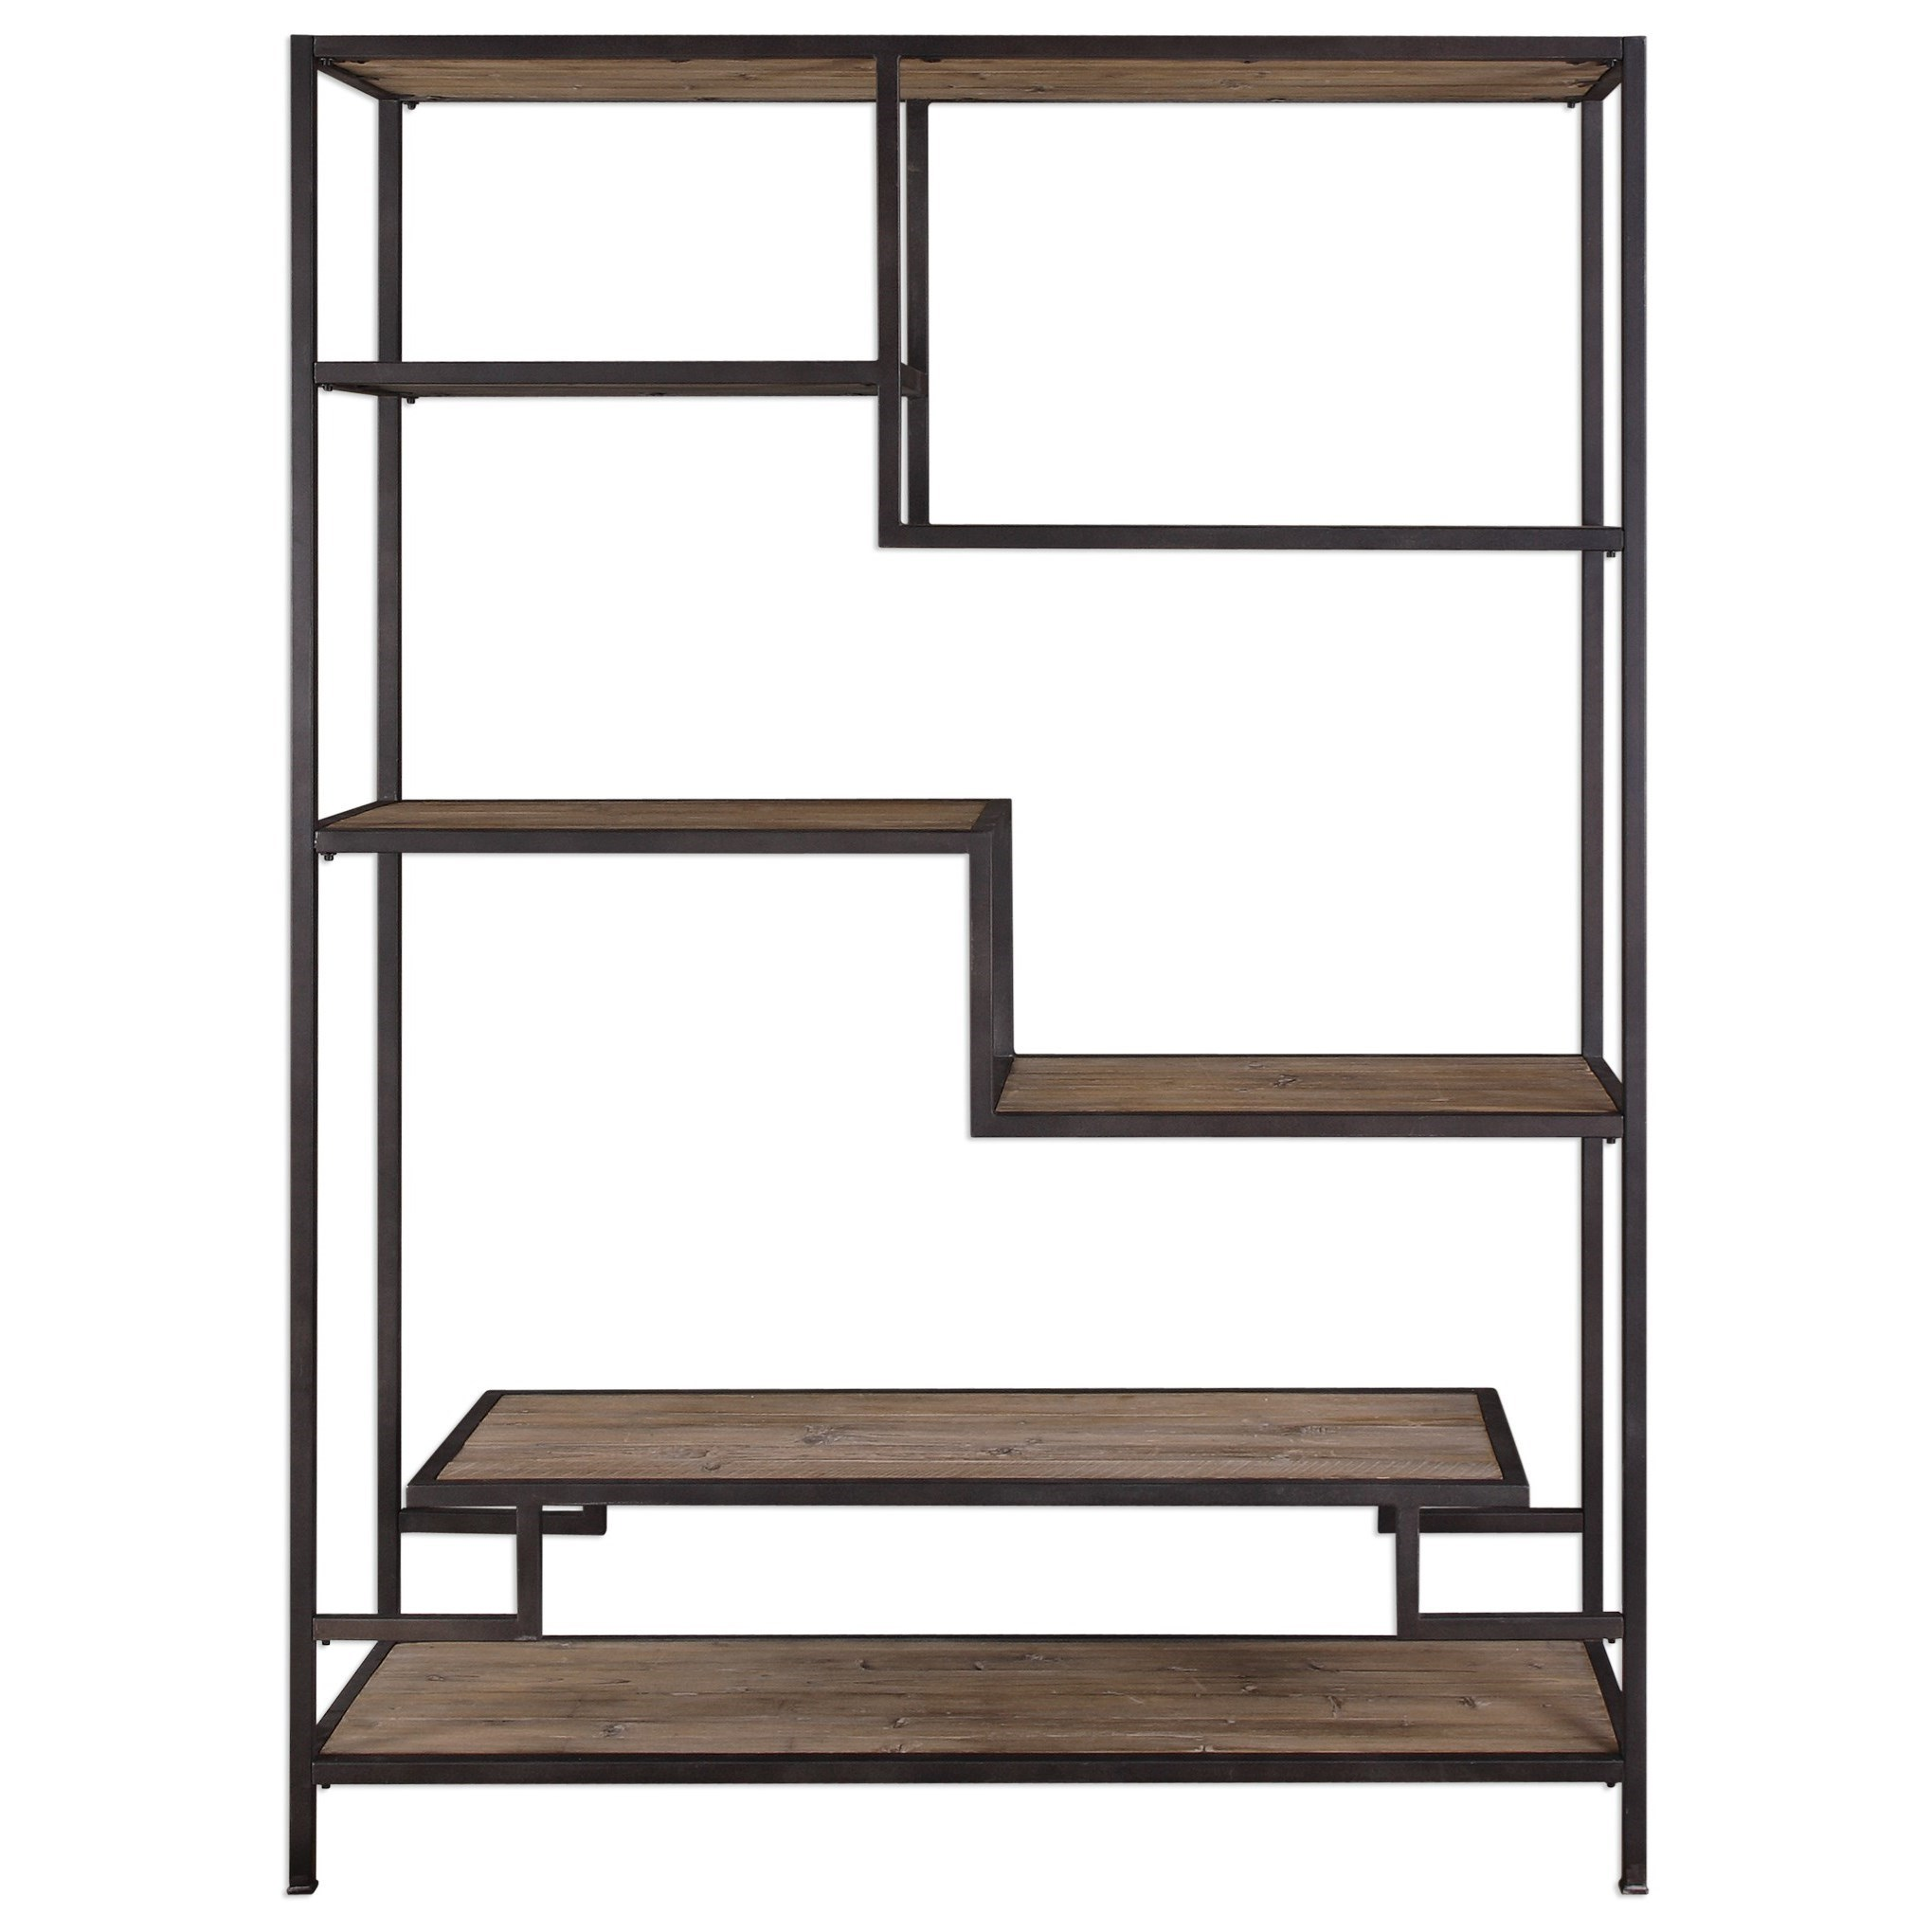 Accent Furniture - Bookcases  Sherwin Industrial Etagere by Uttermost at O'Dunk & O'Bright Furniture